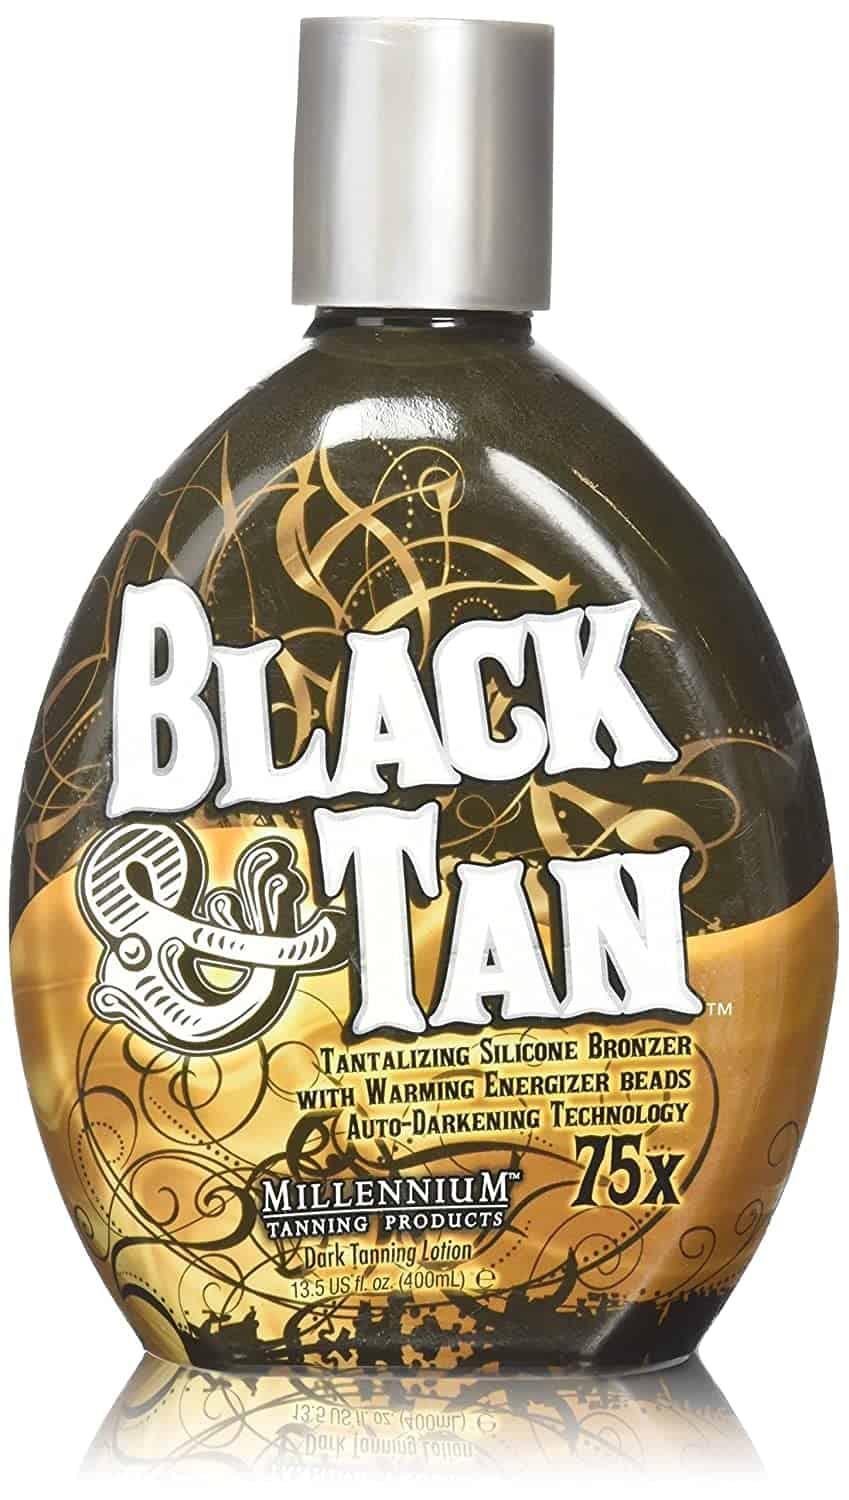 Black & Tan 75x Indoor Tanning Bed Bronzer